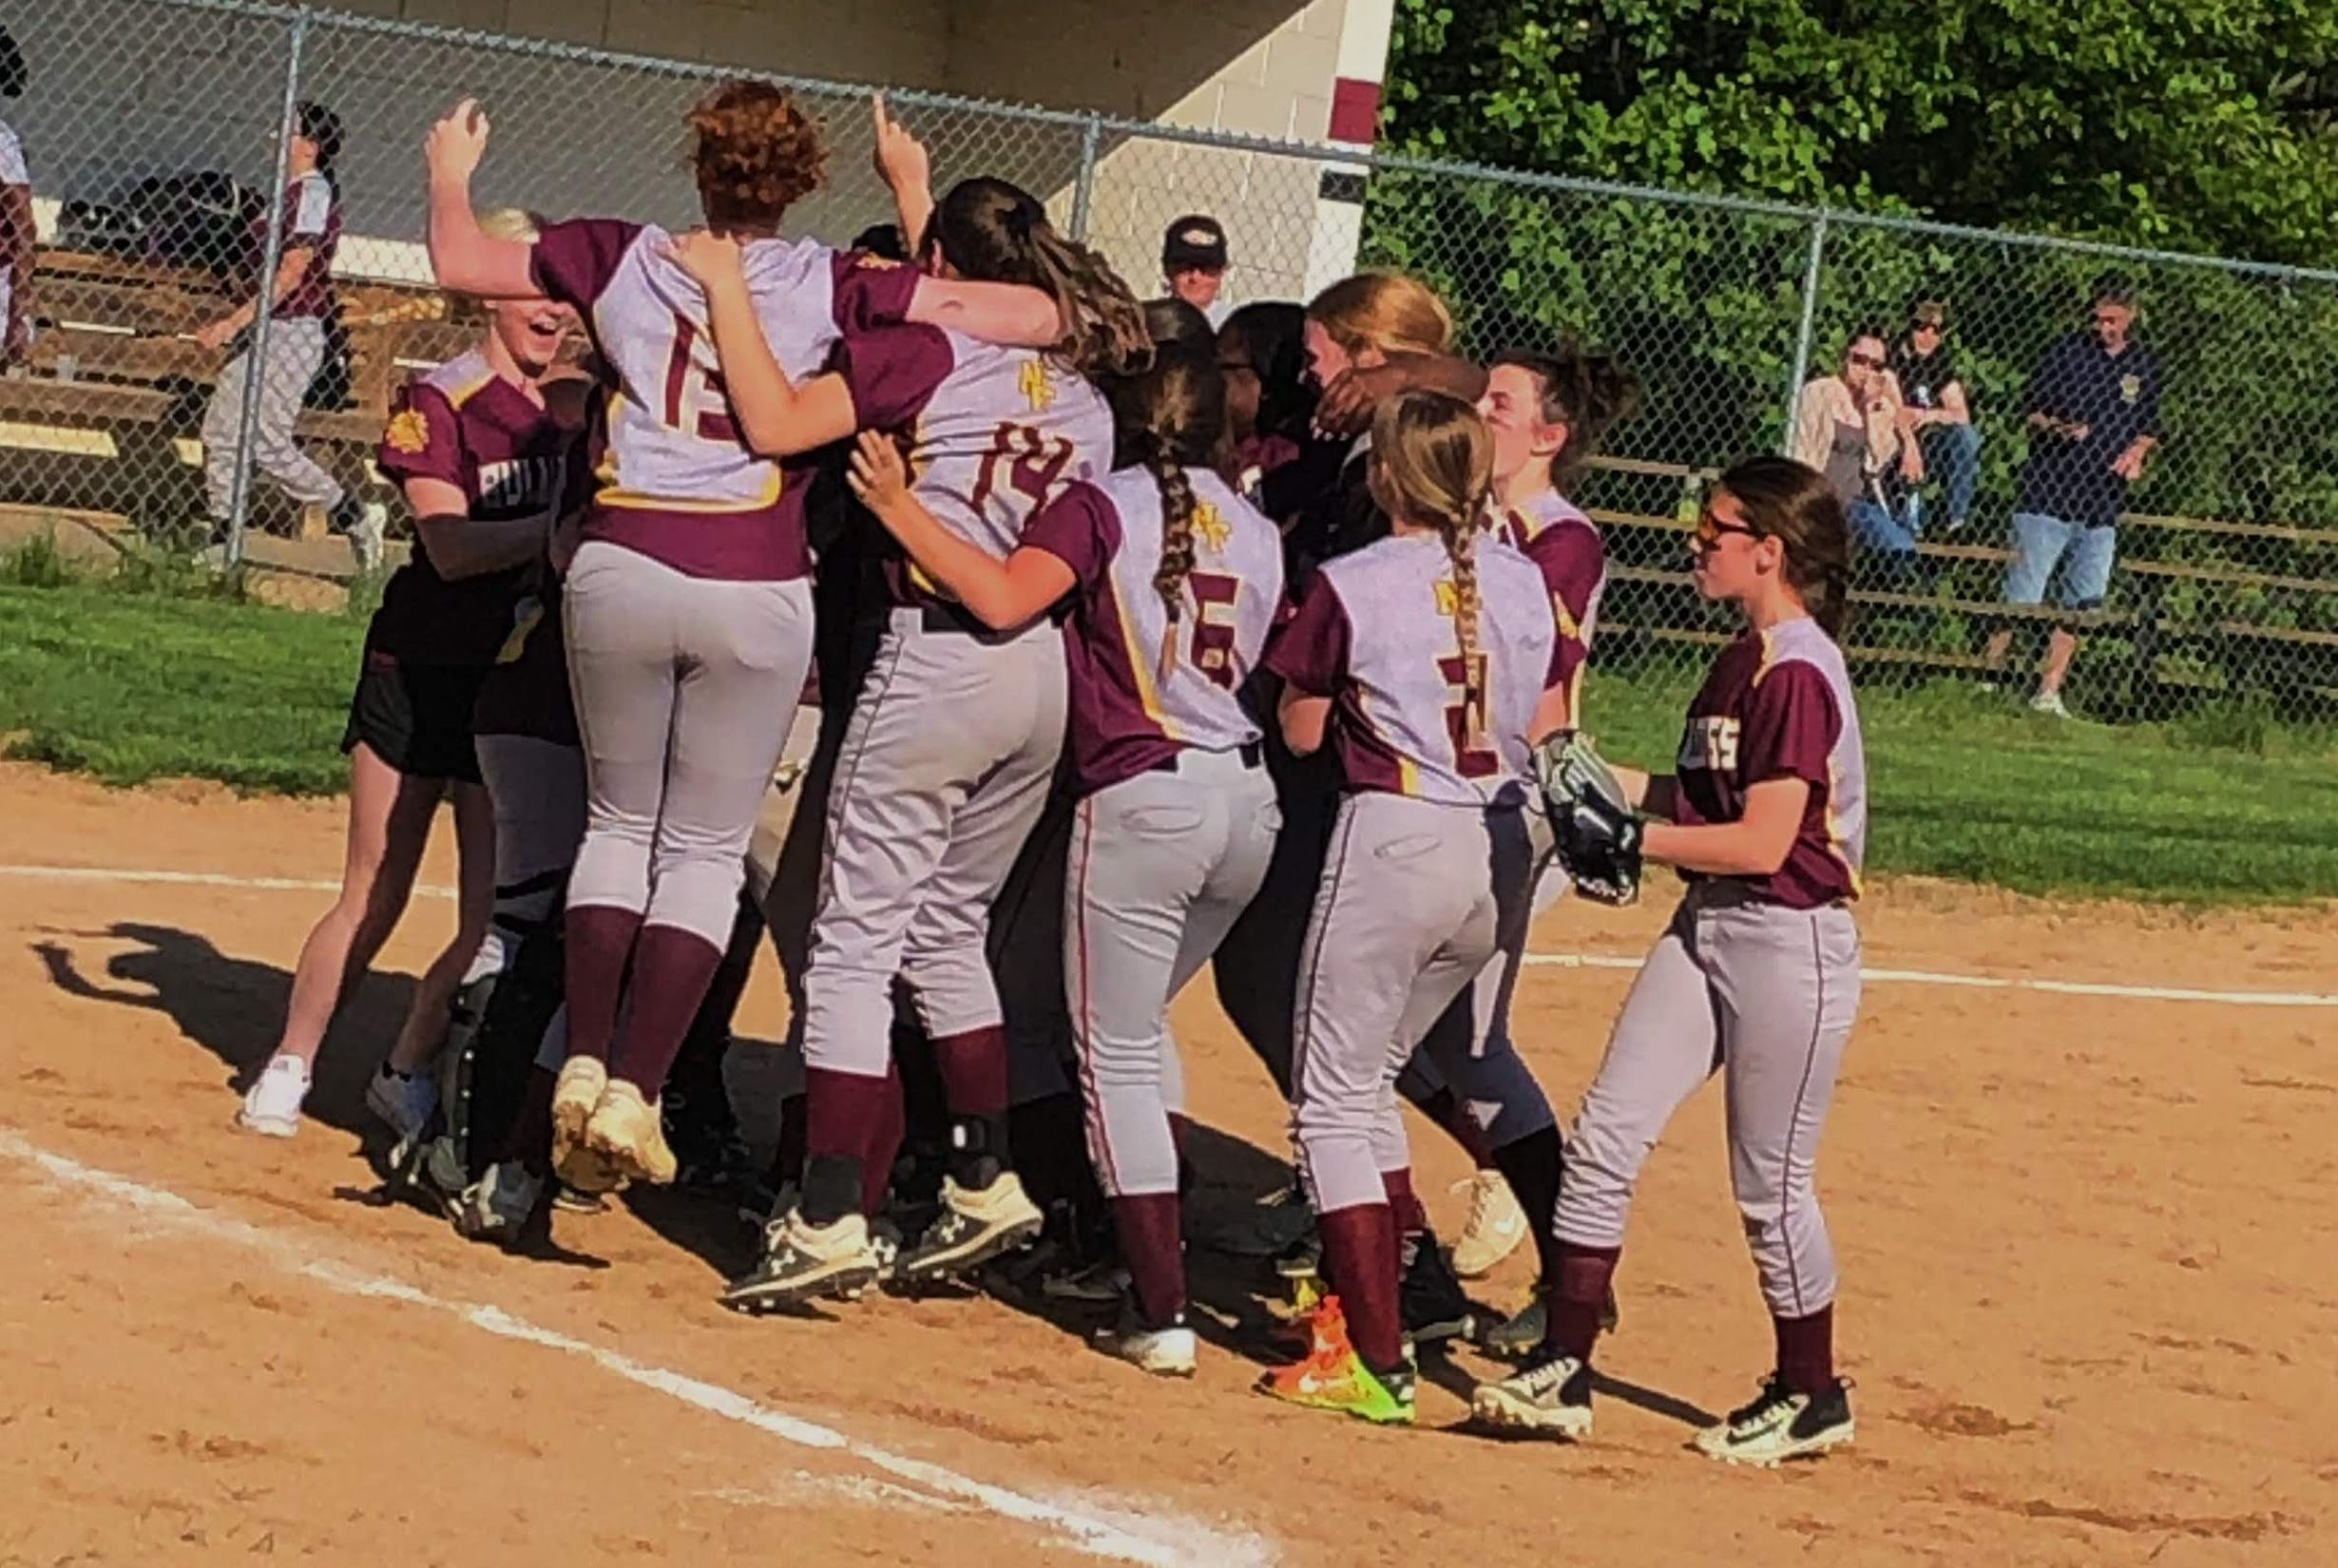 Girls softball team celebrating in a huddle on the playing field